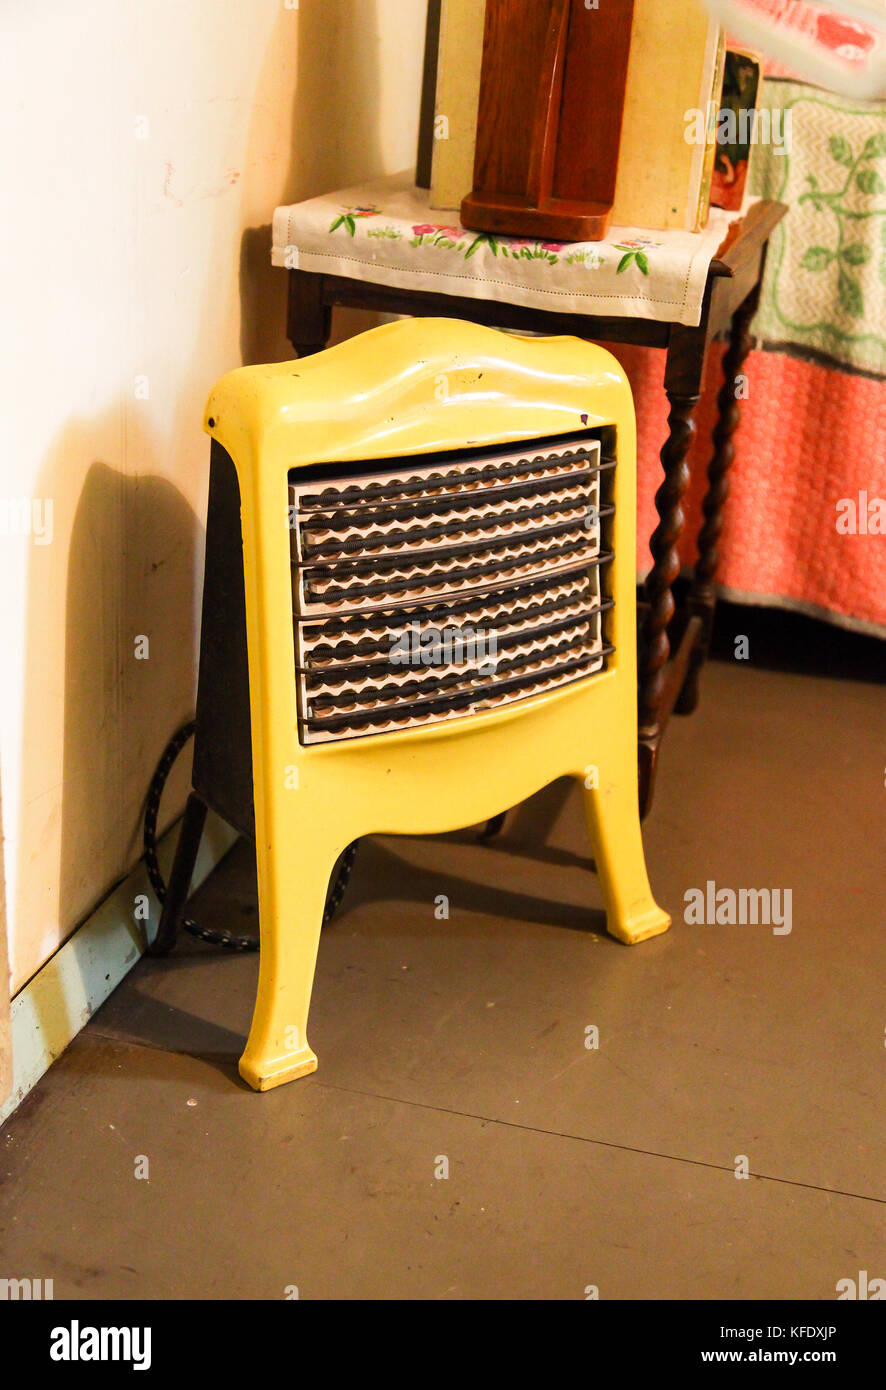 Old Heater Stock Photos Amp Old Heater Stock Images Alamy